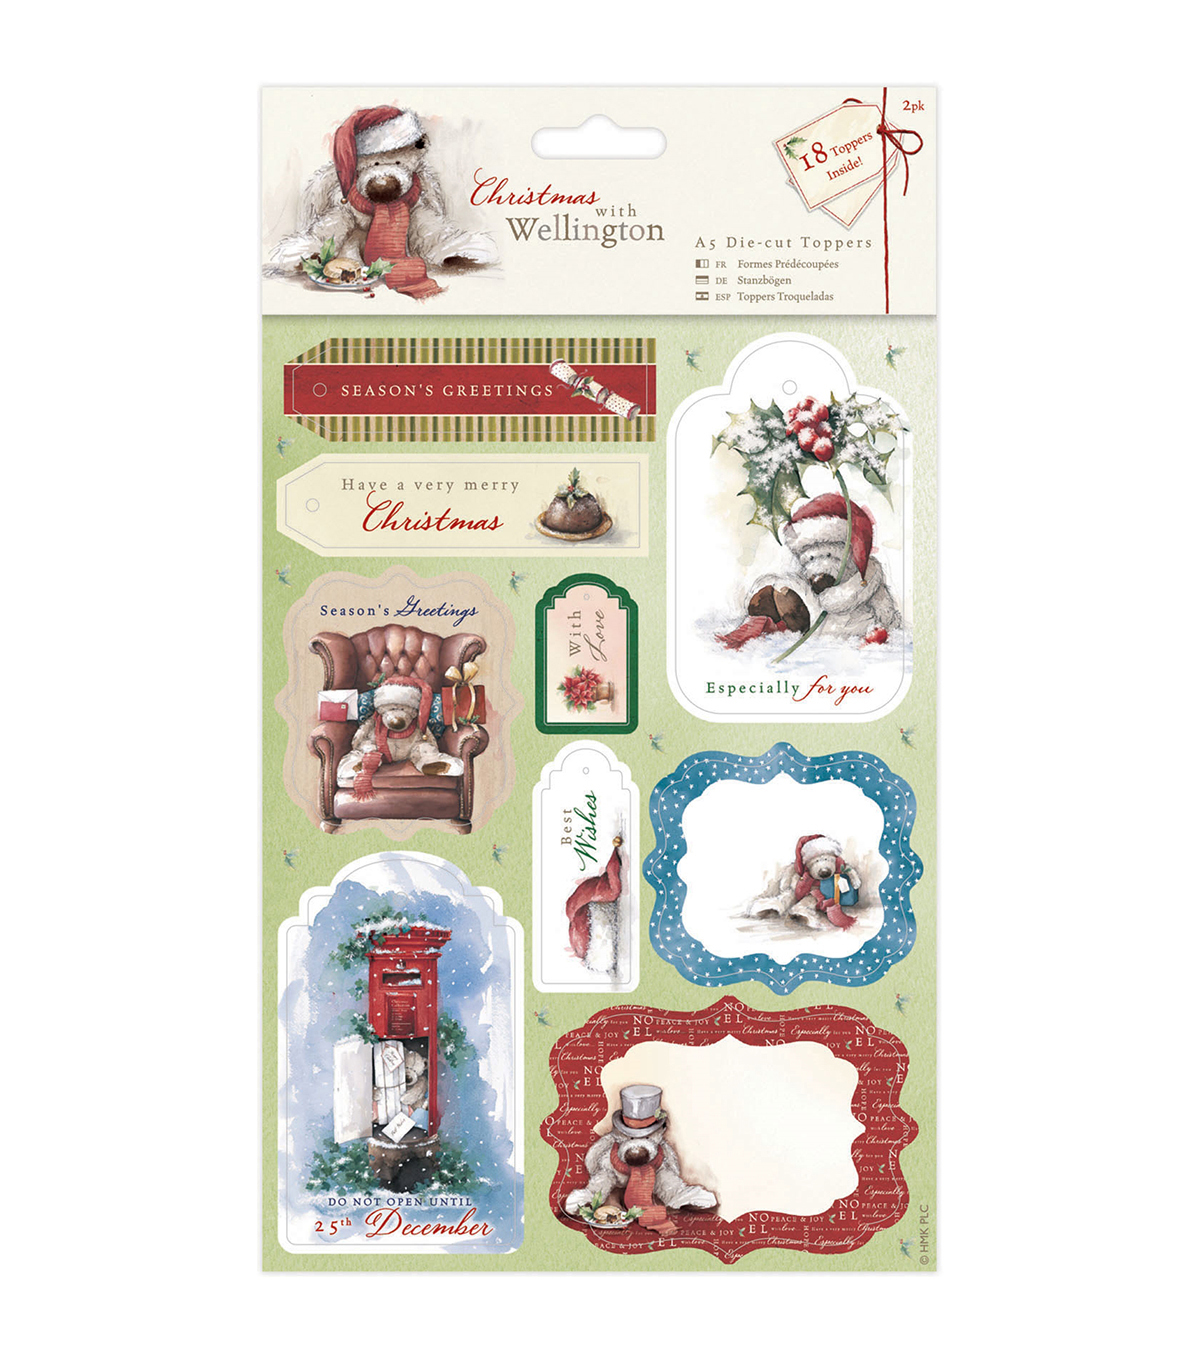 Docrafts Christmas With Wellington A5 Die-Cut Toppers | JOANN